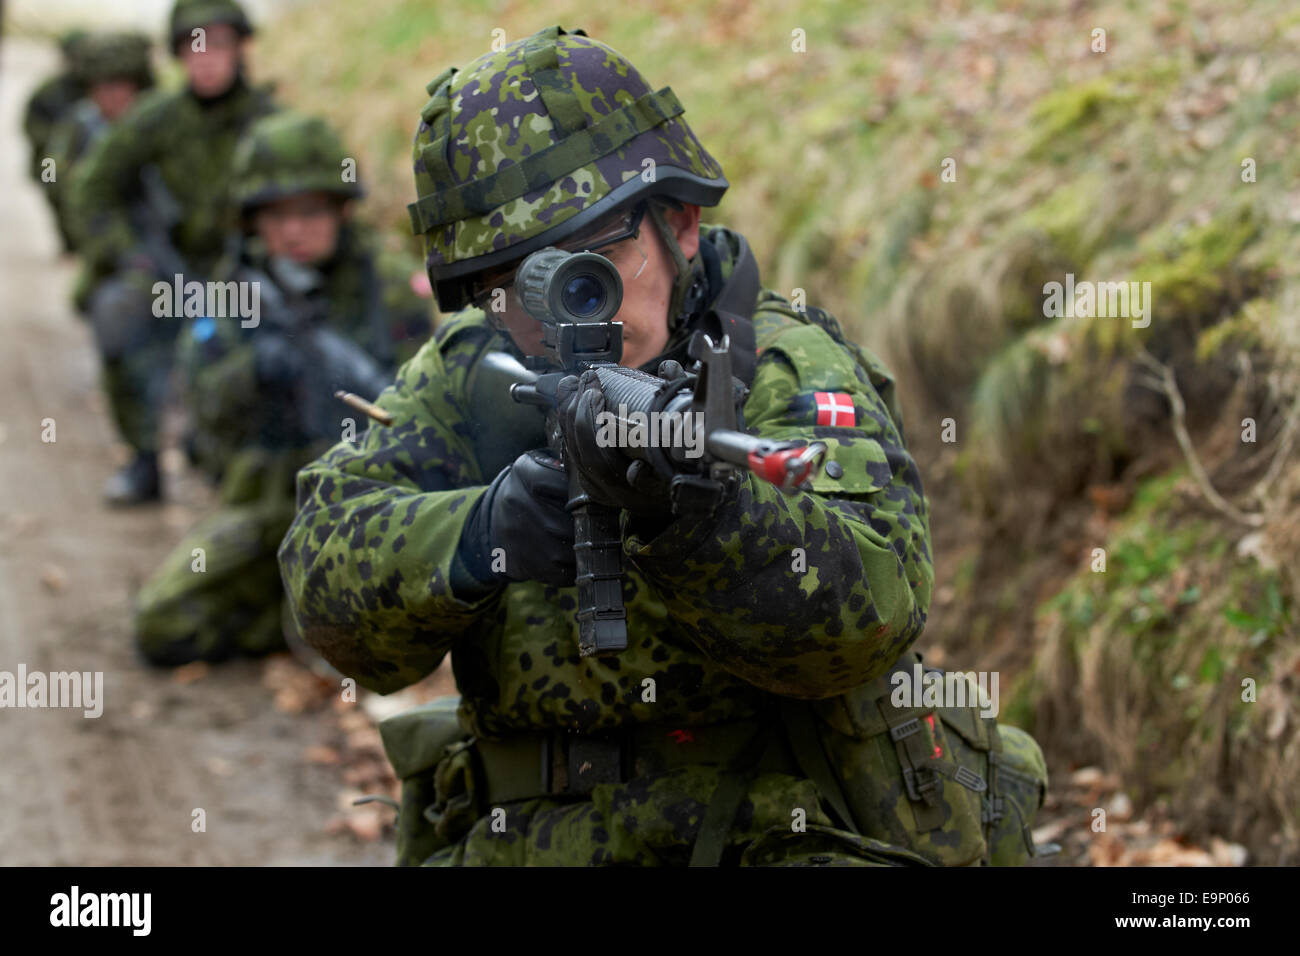 During combat training exercises, a Danish soldier fires blanks with his automatic rifle M/95 (Colt (Diemaco) C7A1. - Stock Image